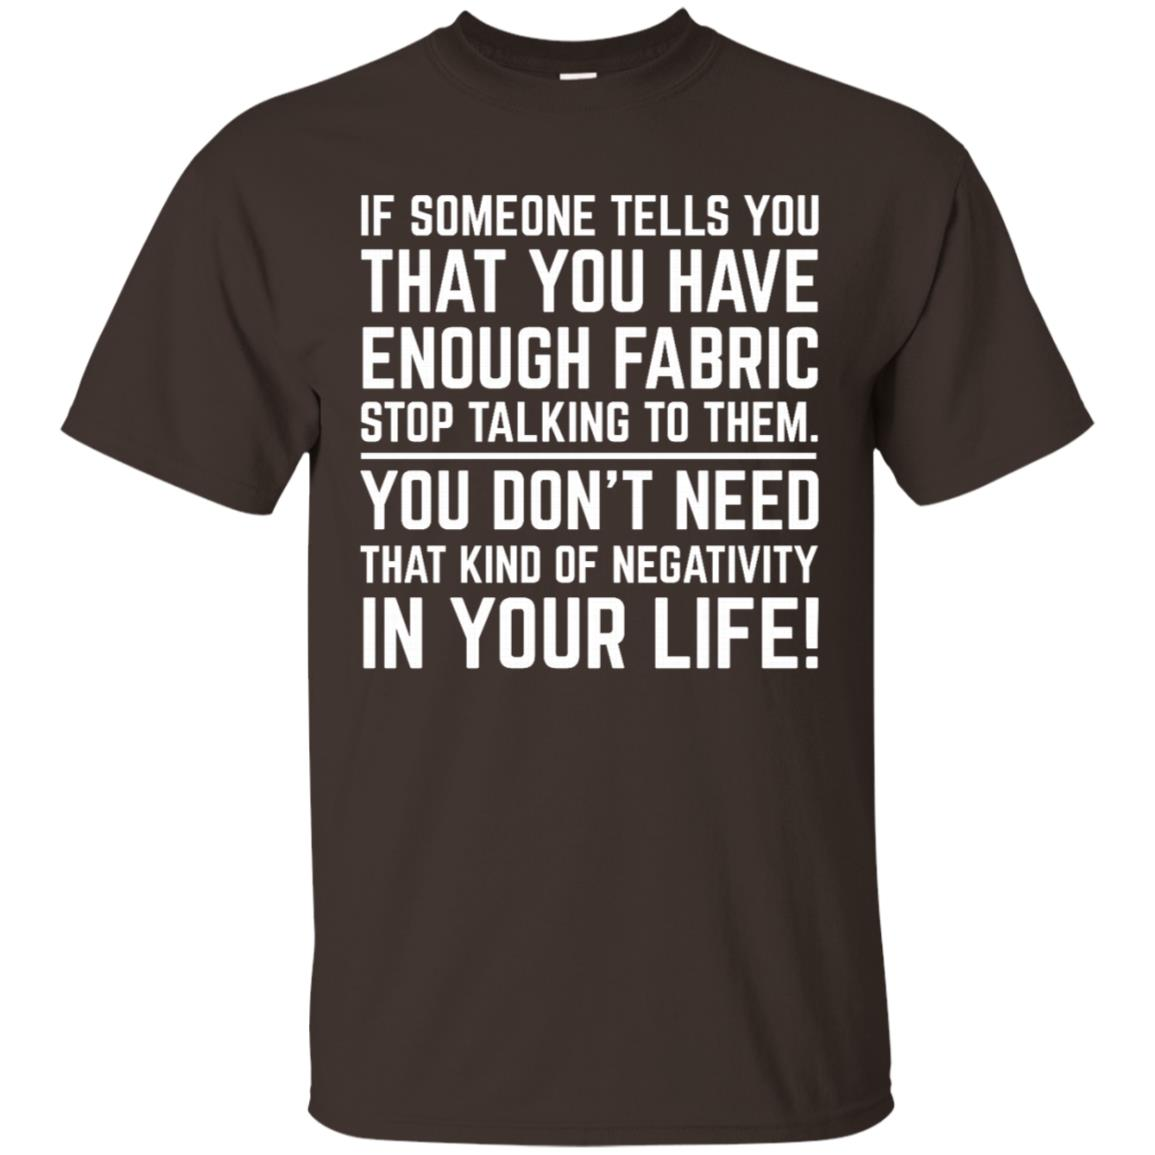 Have Enough Fabric Stop Talking To Them Negativity Unisex Short Sleeve